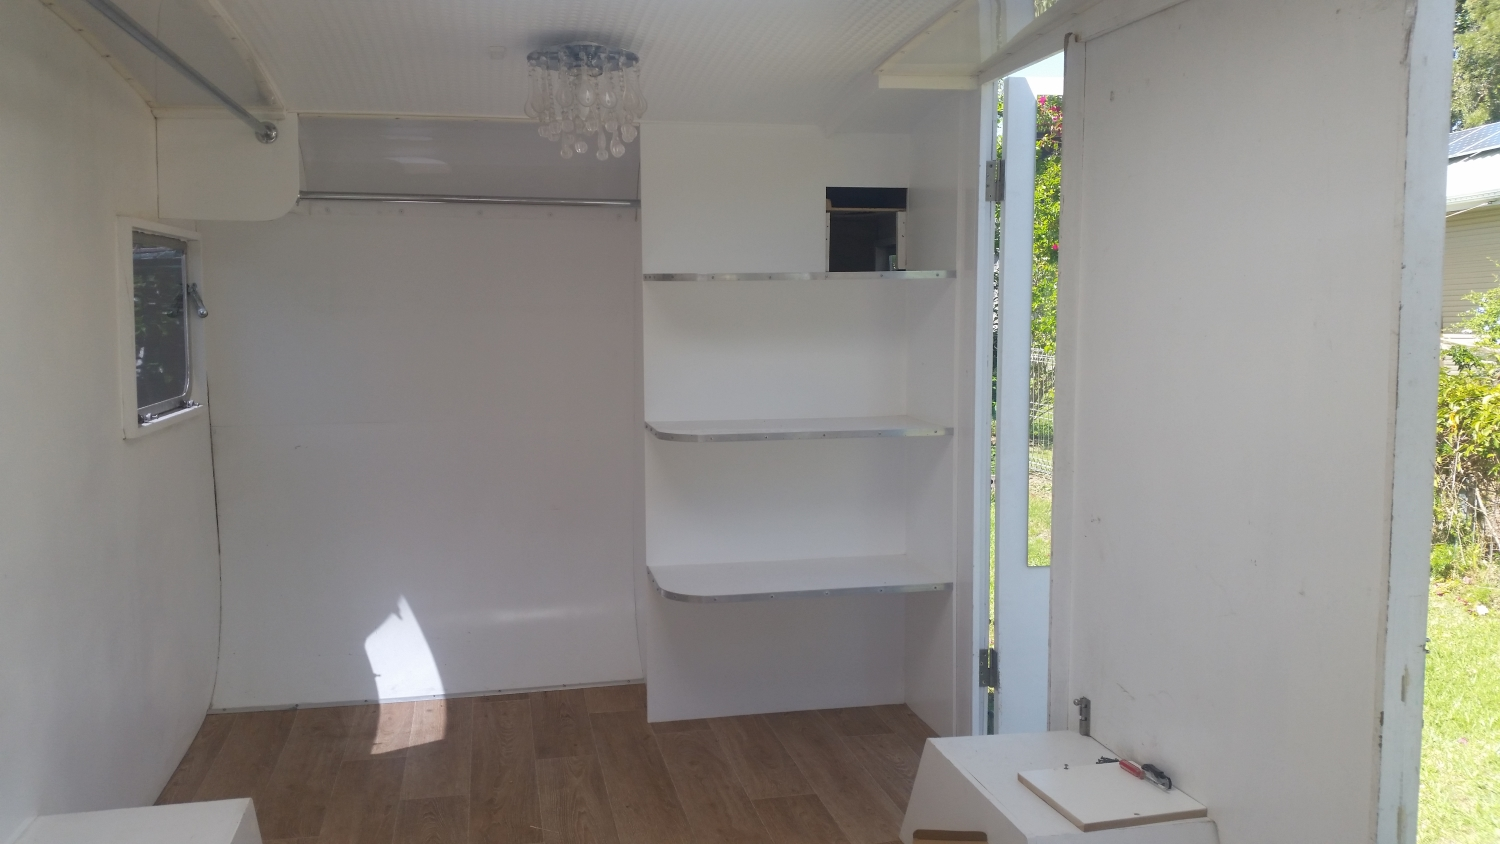 Vintage Caravan Renovation in Coolangatta, Gold Coast. The Caravan was converted into a mobile salon. See the before and after photos of this caravan reno.